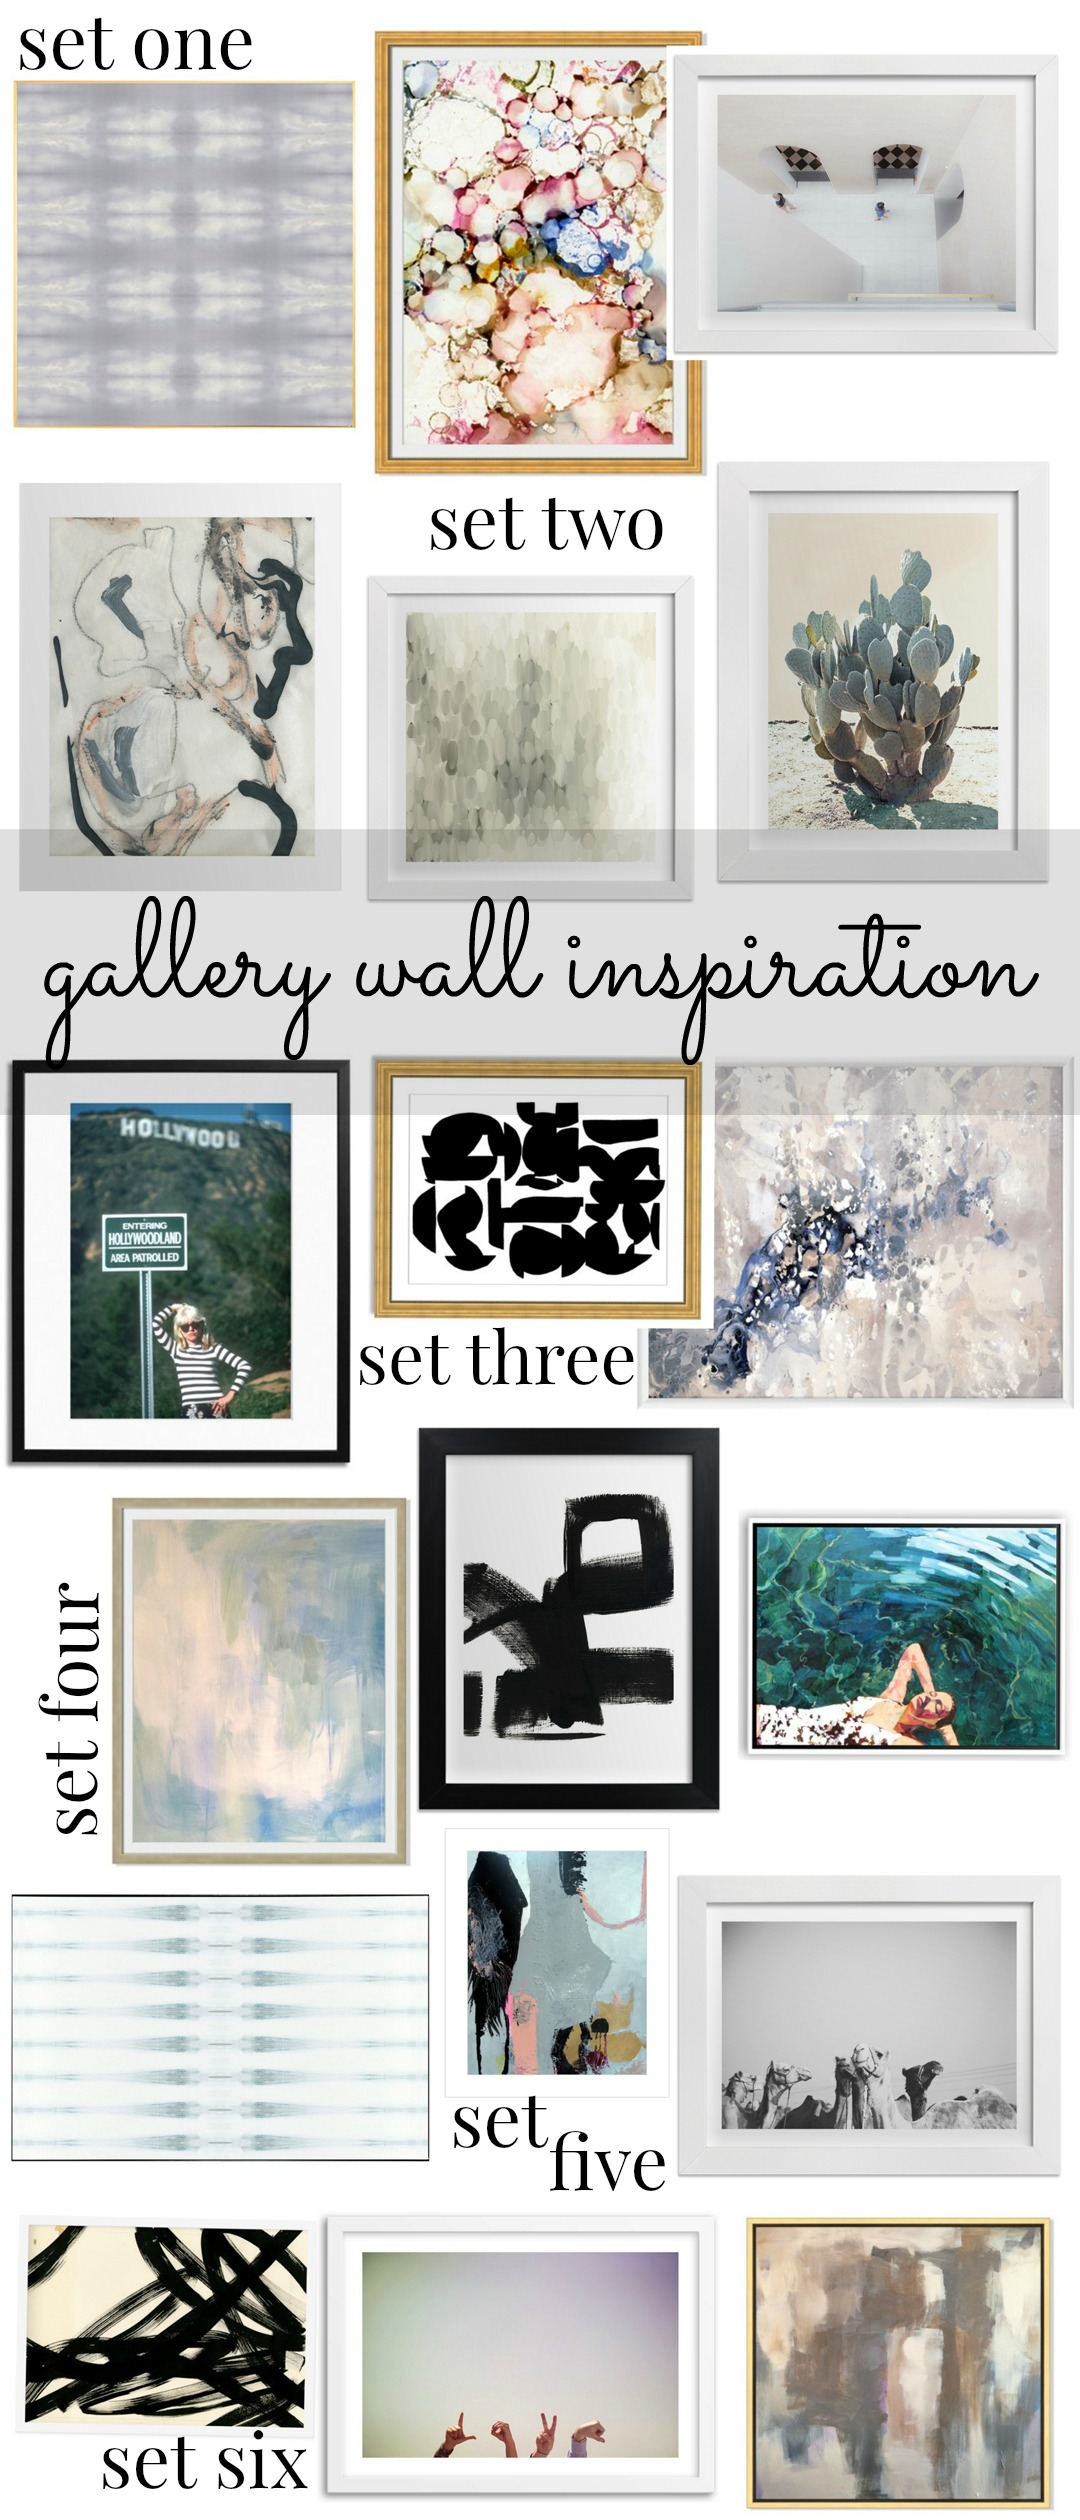 Home Is Where The Heart Is Gallery Wall Inspiration